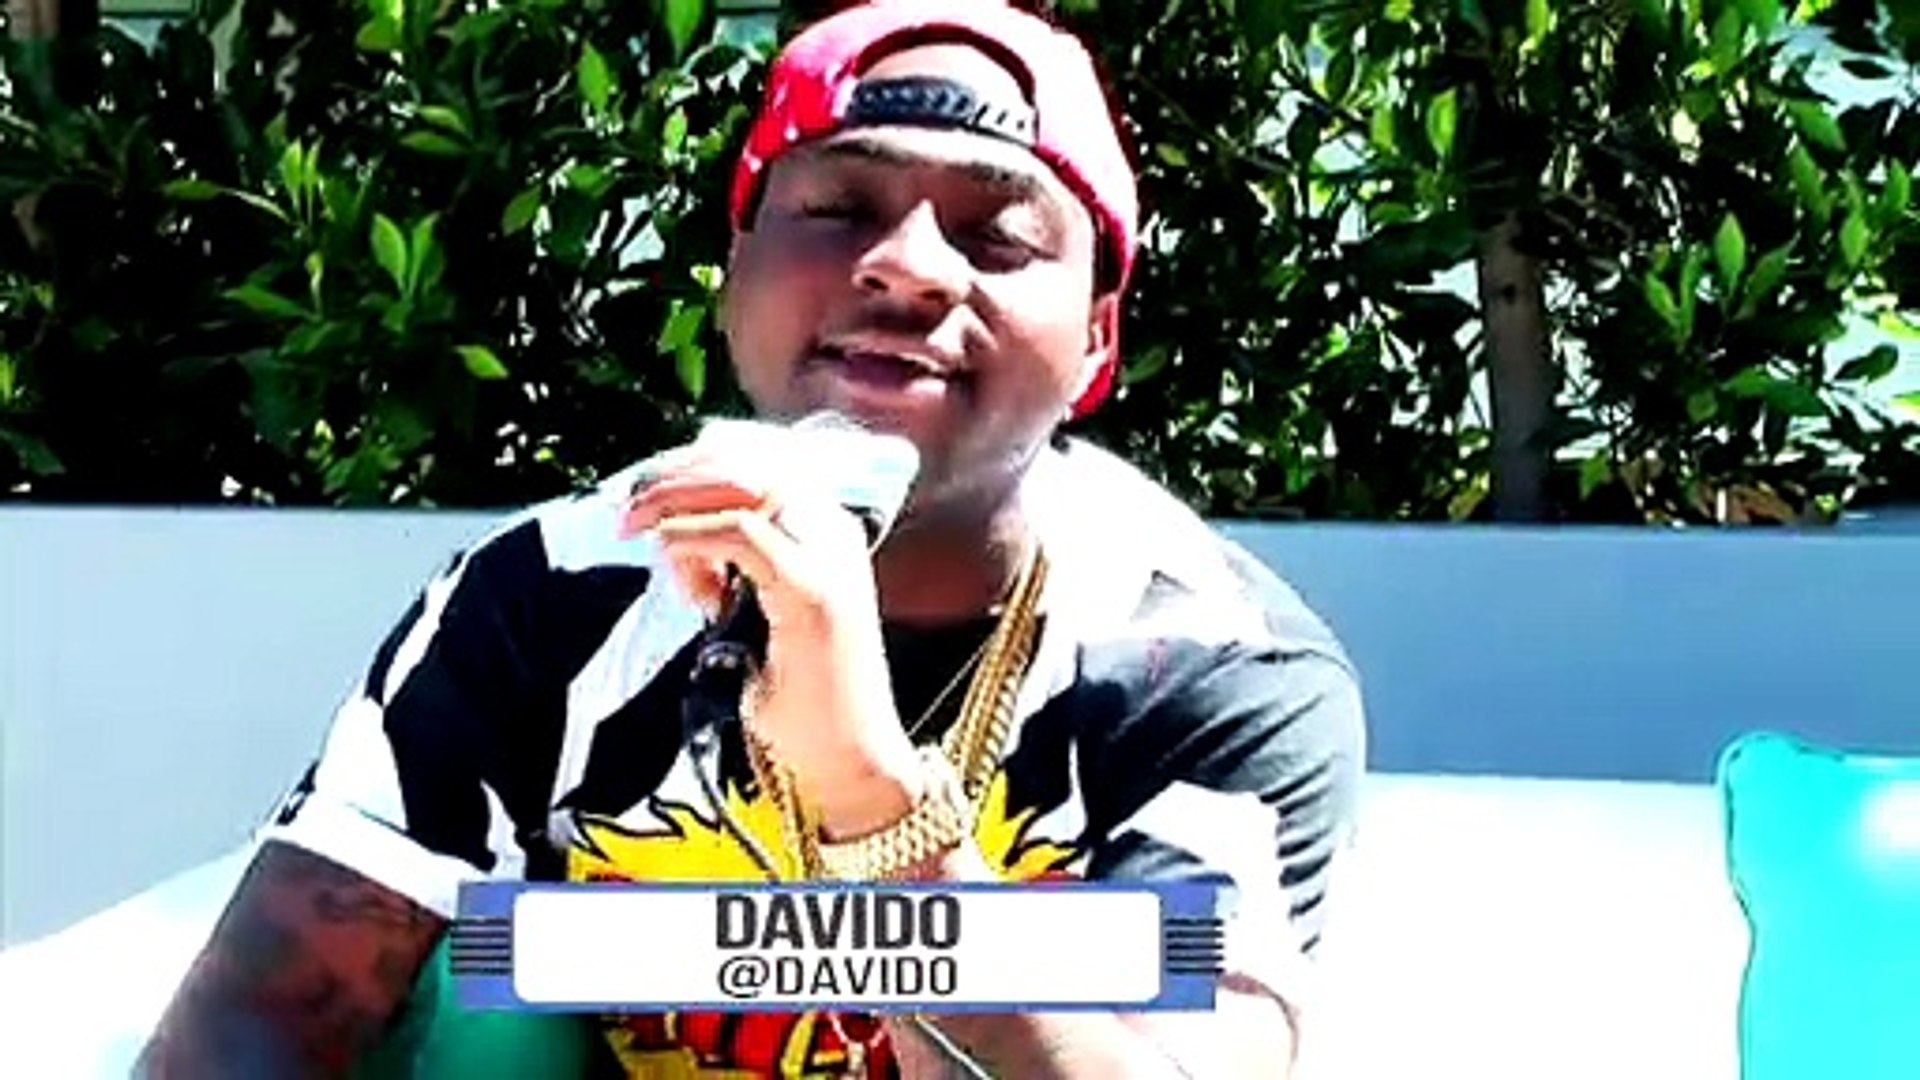 F78NEWS: Watch! Davido and Lil Baby Are Shooting A Video Together. #Davido #LilBaby